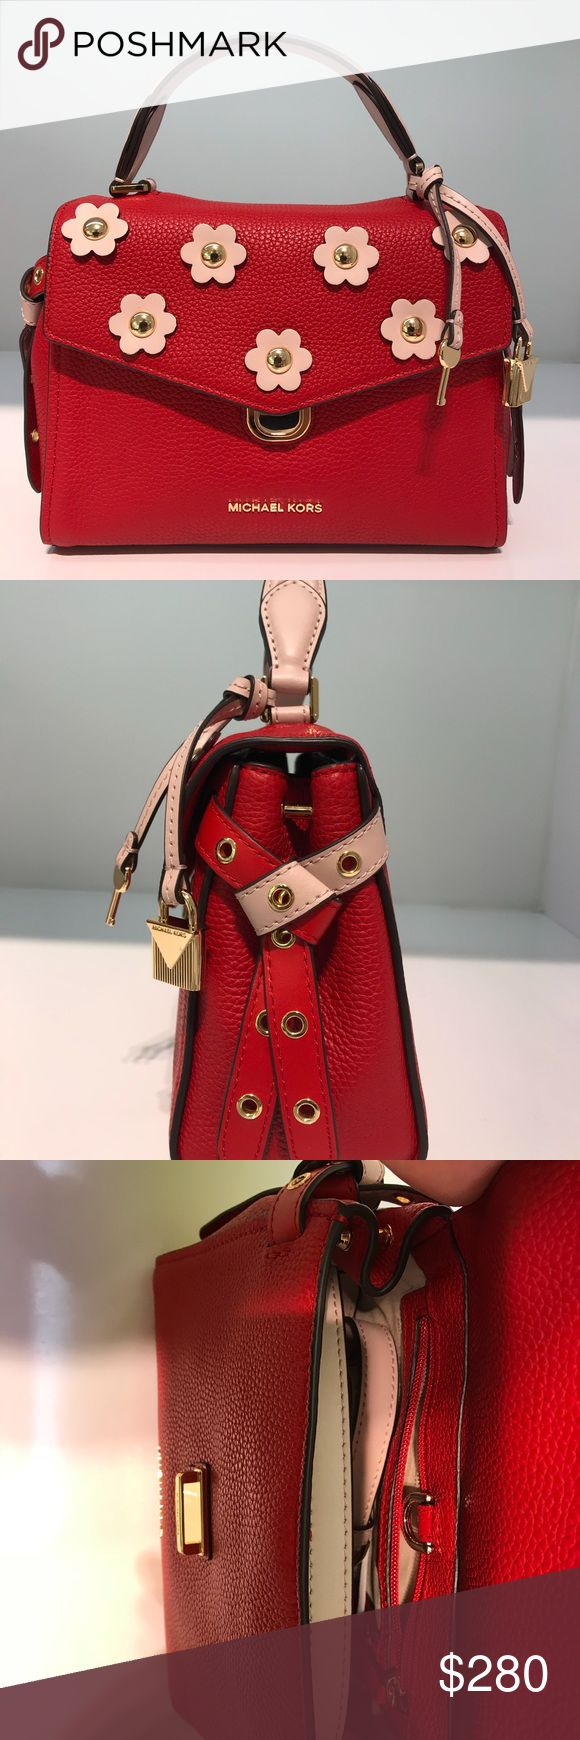 Michael Kors Bristol Handbag AUTHENTIC michael kors Bristol satchel. Brand new. has never been worn. tag is still attached. handbag comes with dustbag. Spring 2018 collection. Michael Kors Bags Satchels